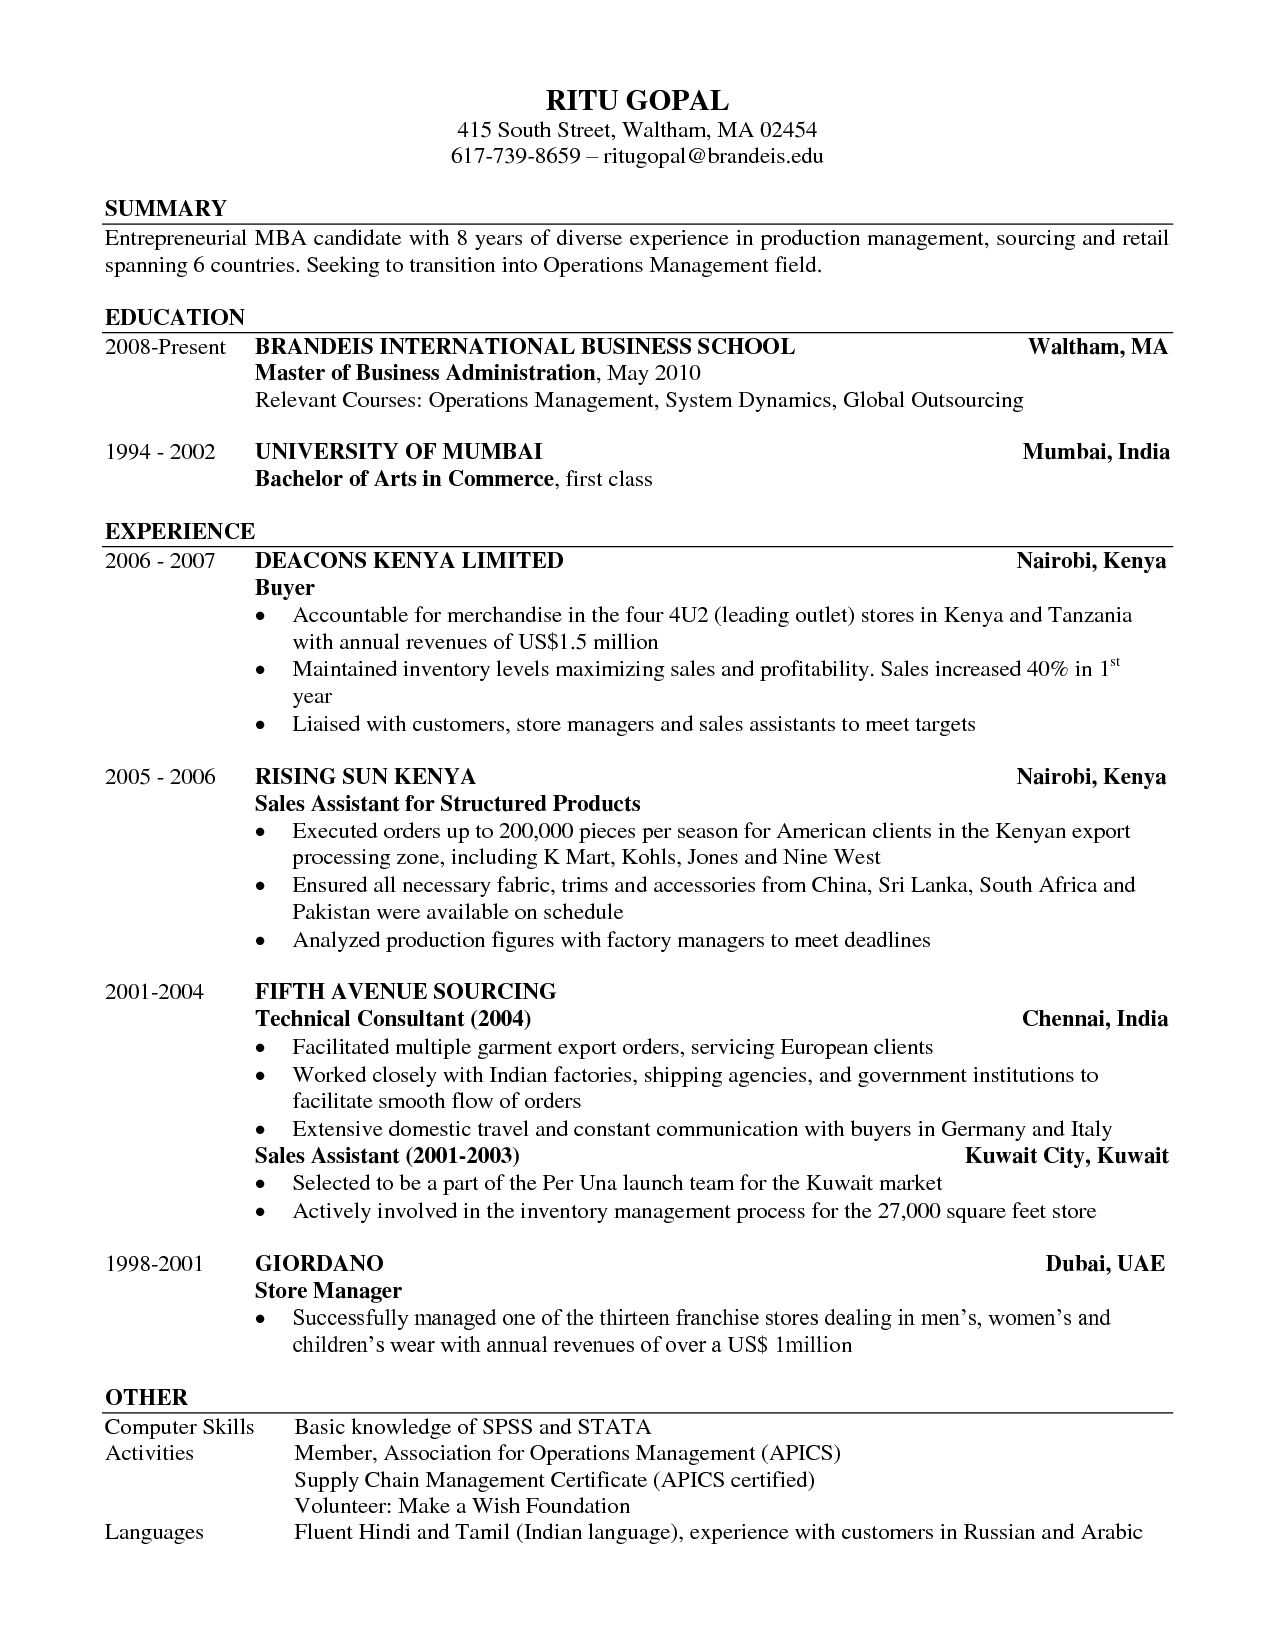 harvard business school resume format Parlobuenacocinaco